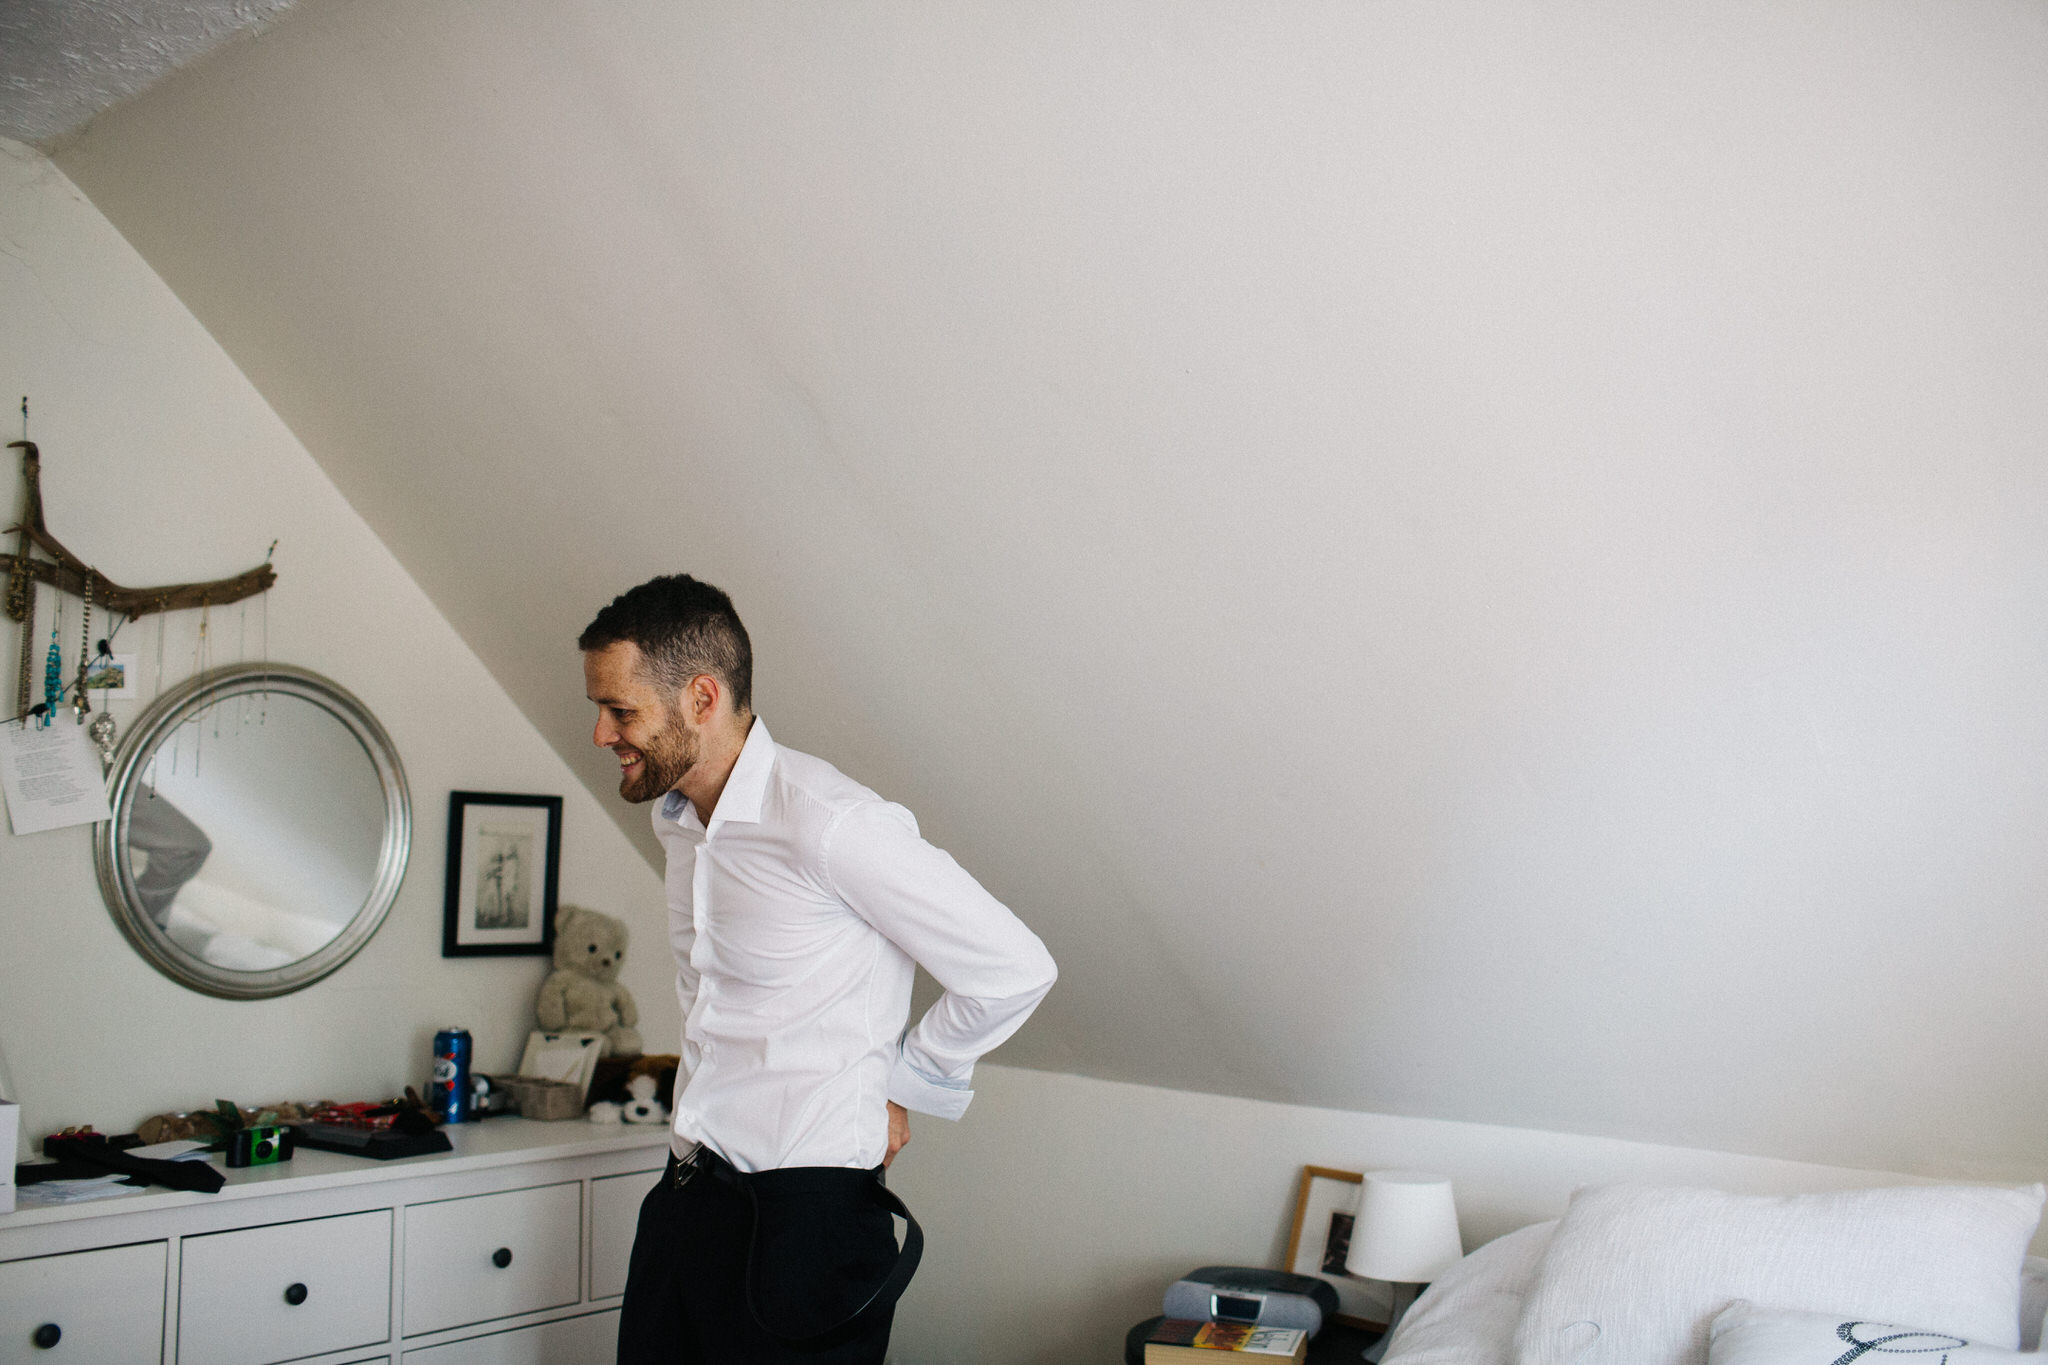 groom getting dressed, wedding day photos, documentary wedding photographer toronto, berkeley church toronto